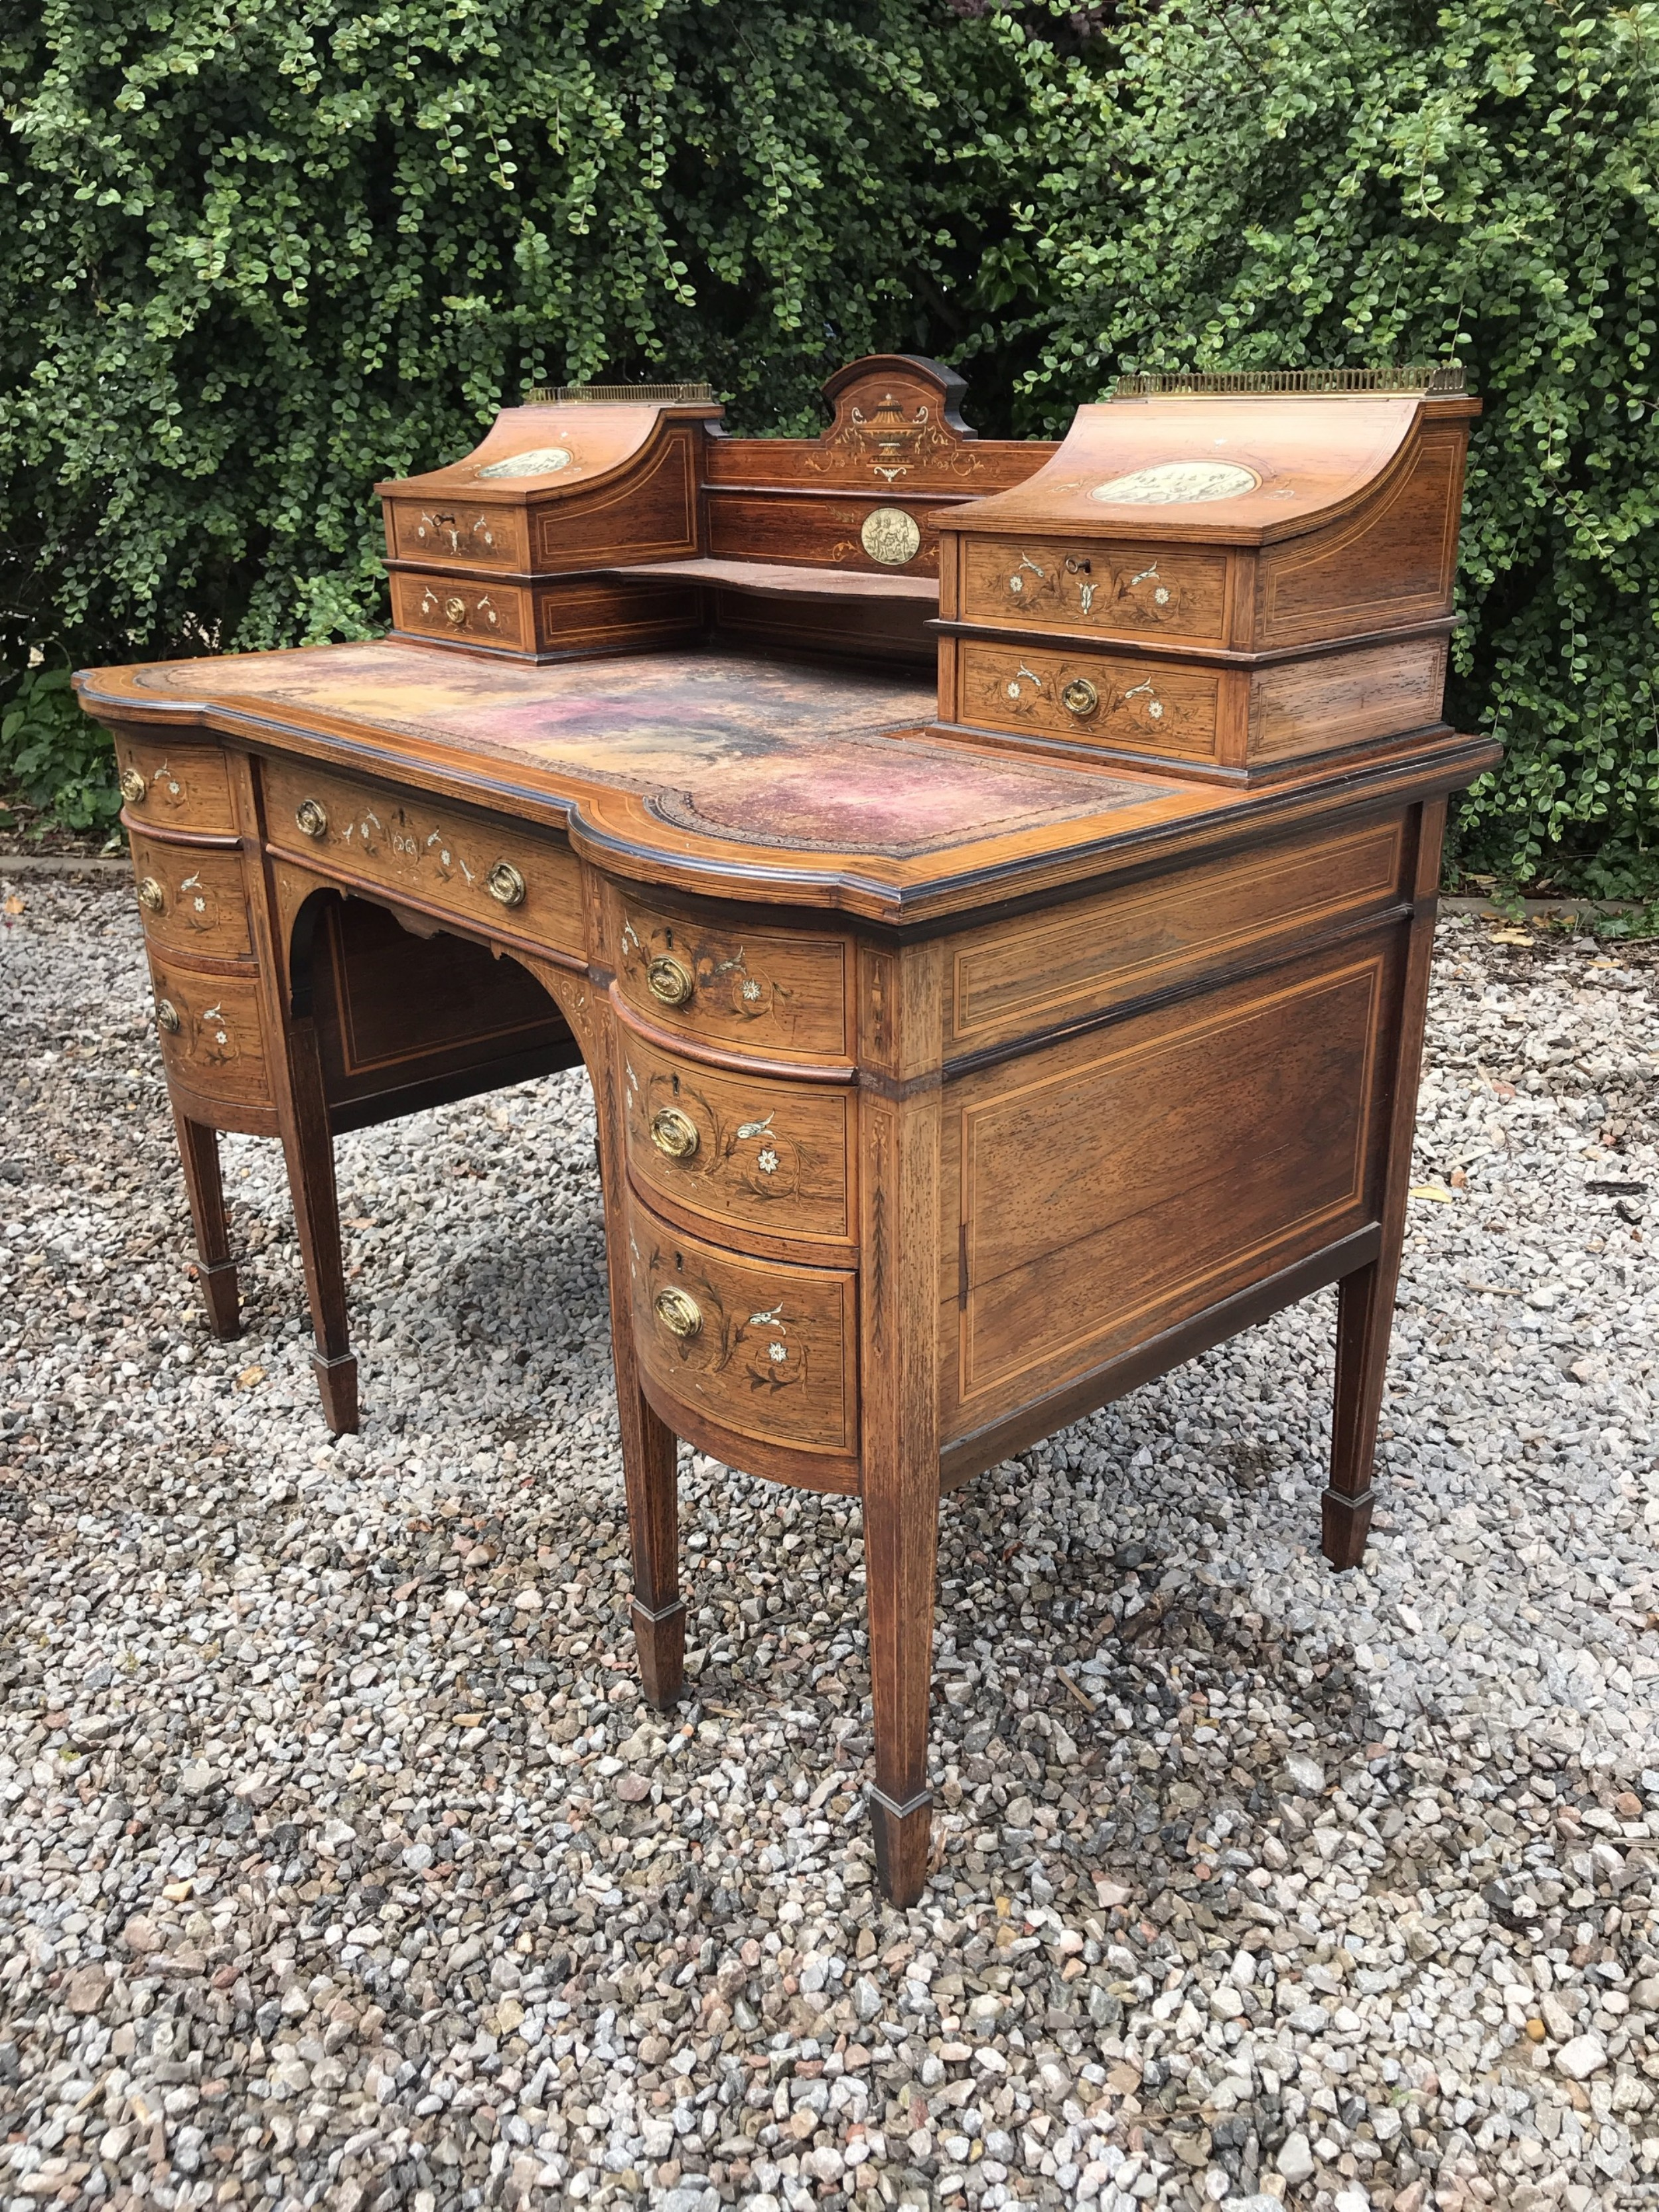 excellent quality edwards roberts marquetry inlaid edwardian rosewood desk